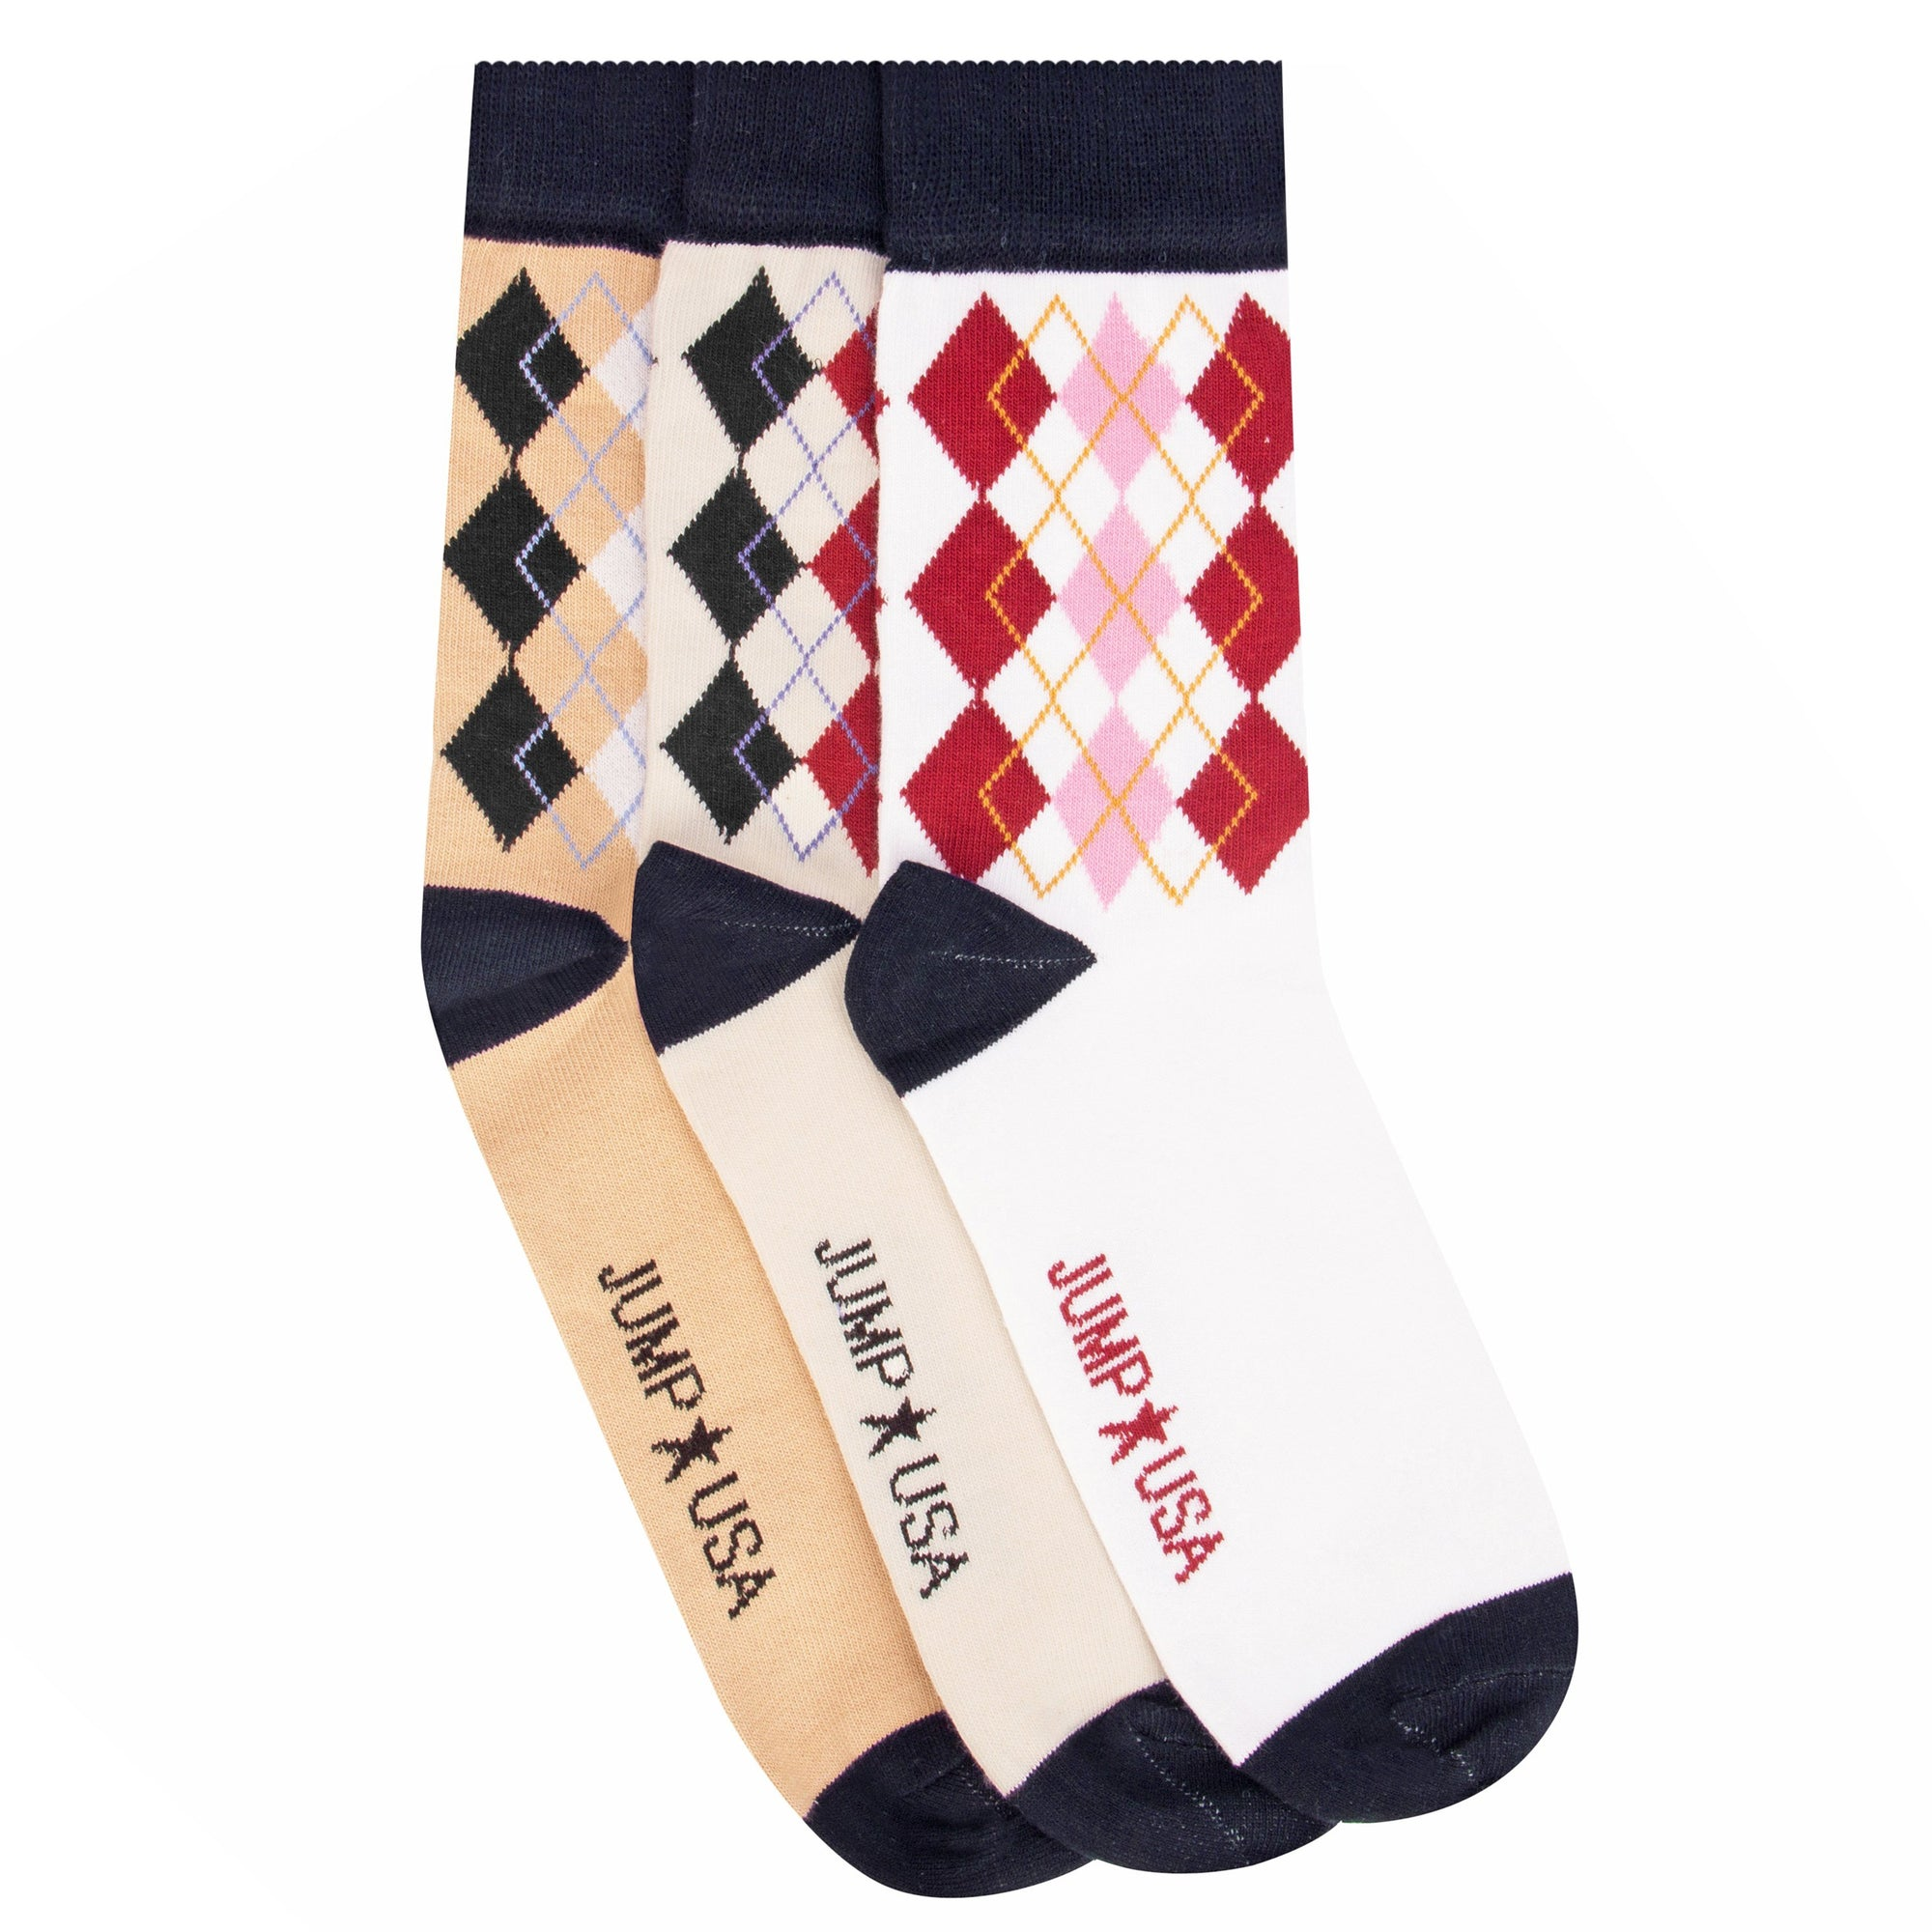 Men Pack of 3 Calf Length socks